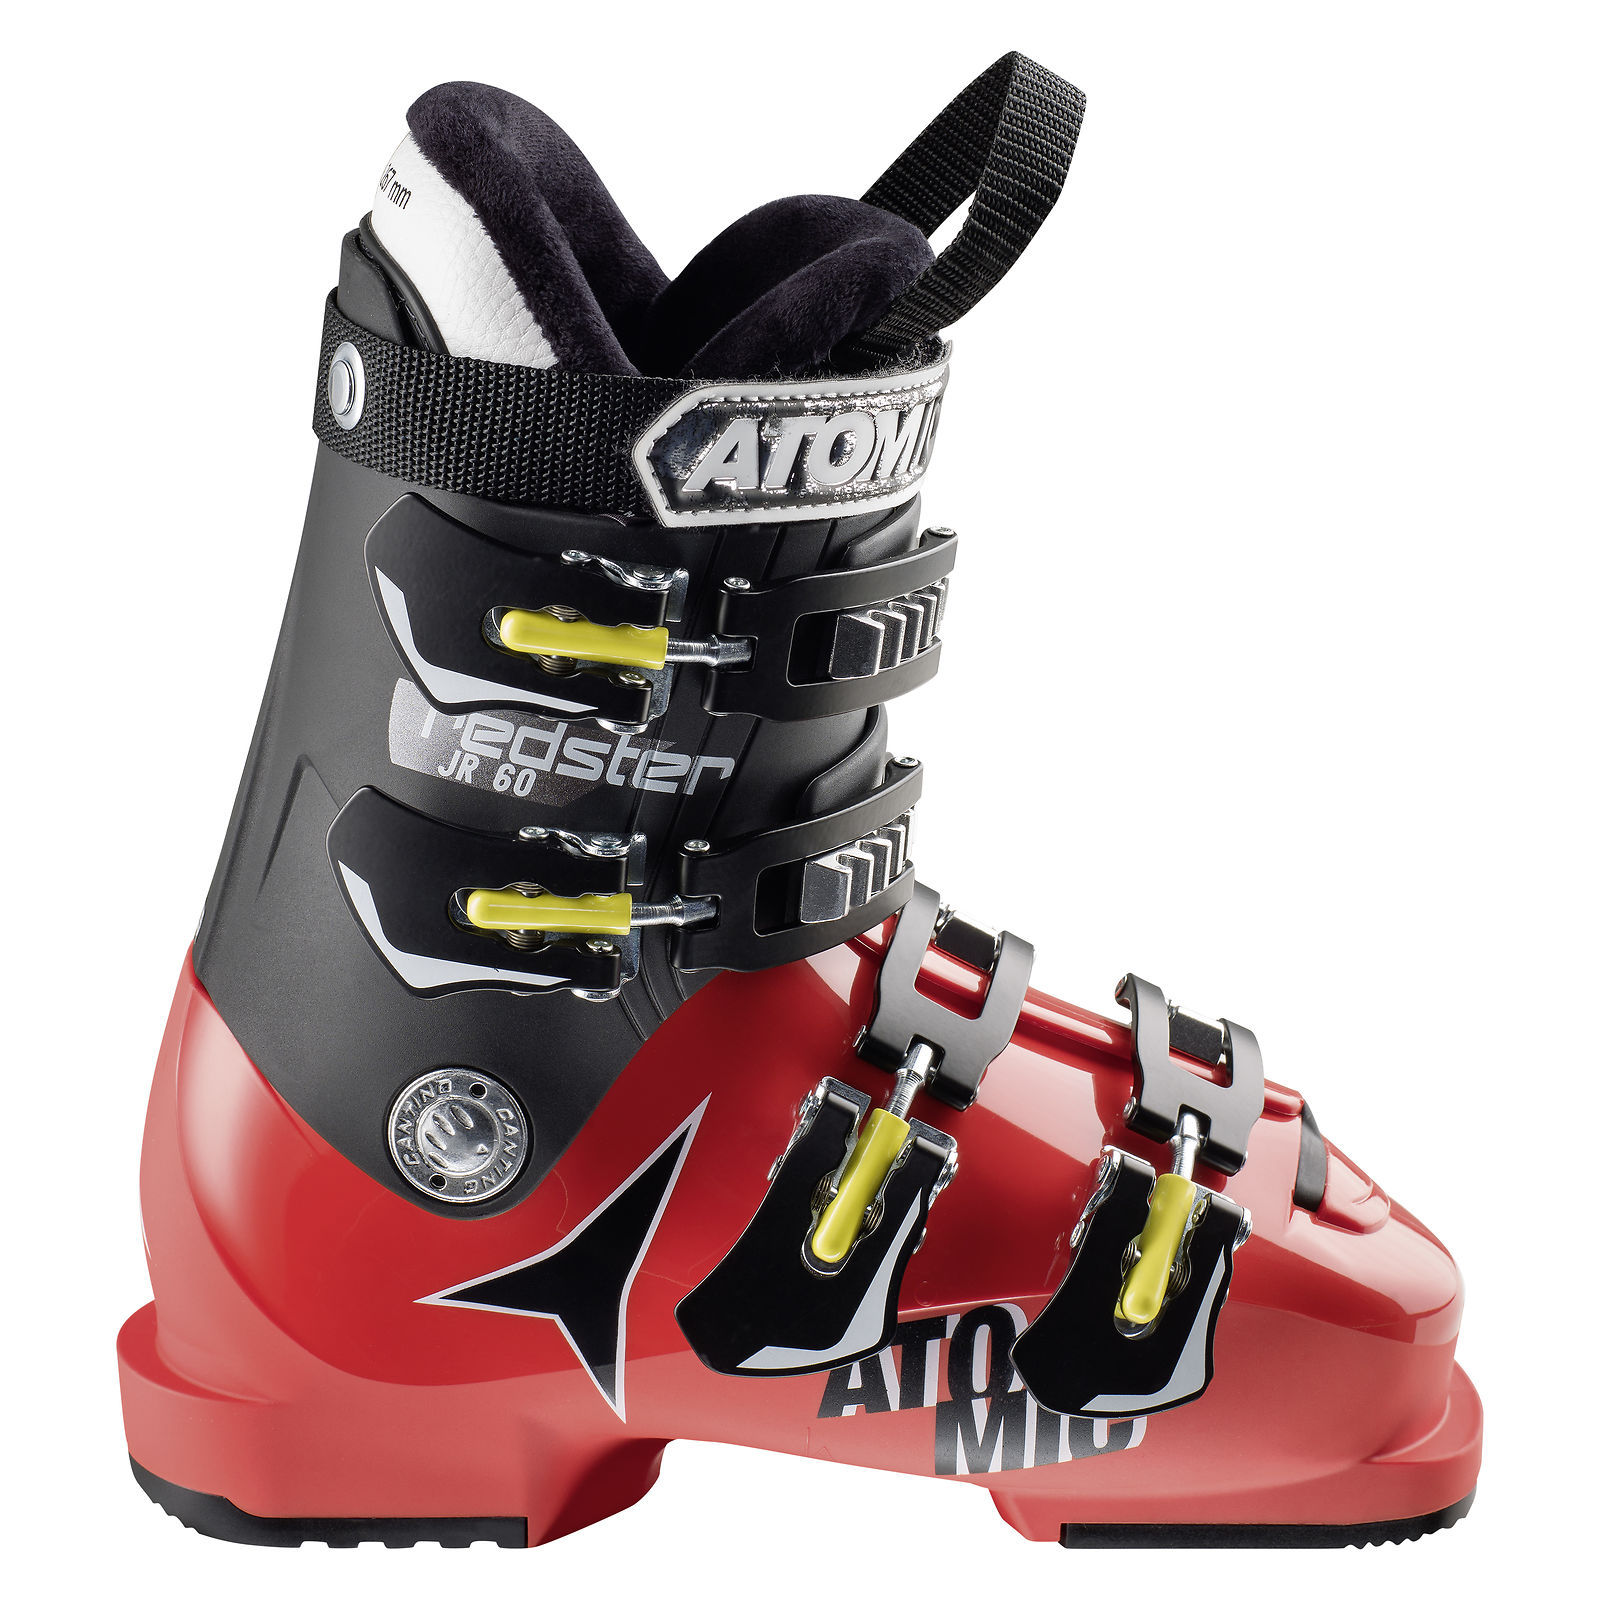 Buty Atomic Redster Jr 60 AE5010900